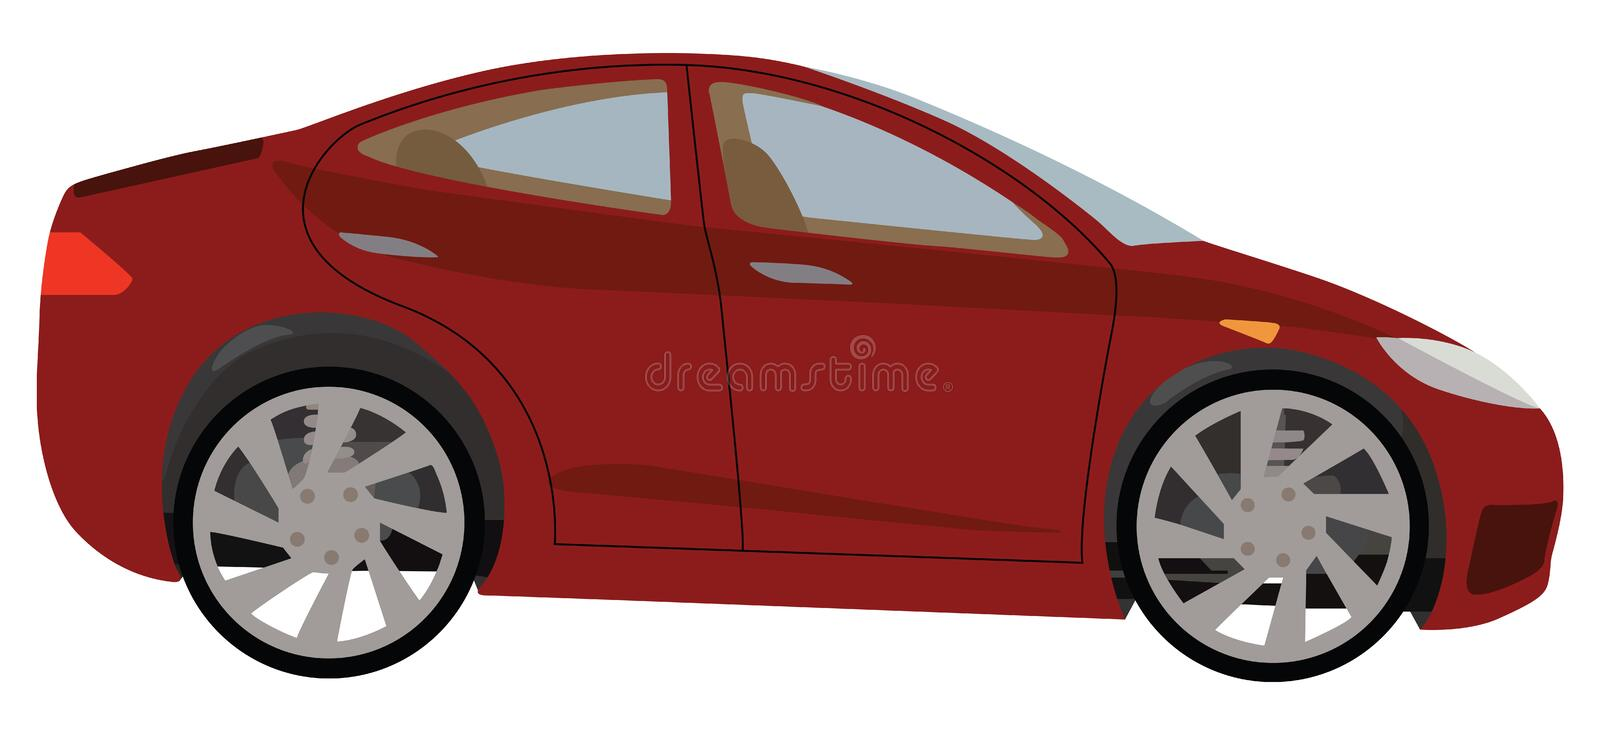 Red car. Illustration red car on a white background royalty free illustration